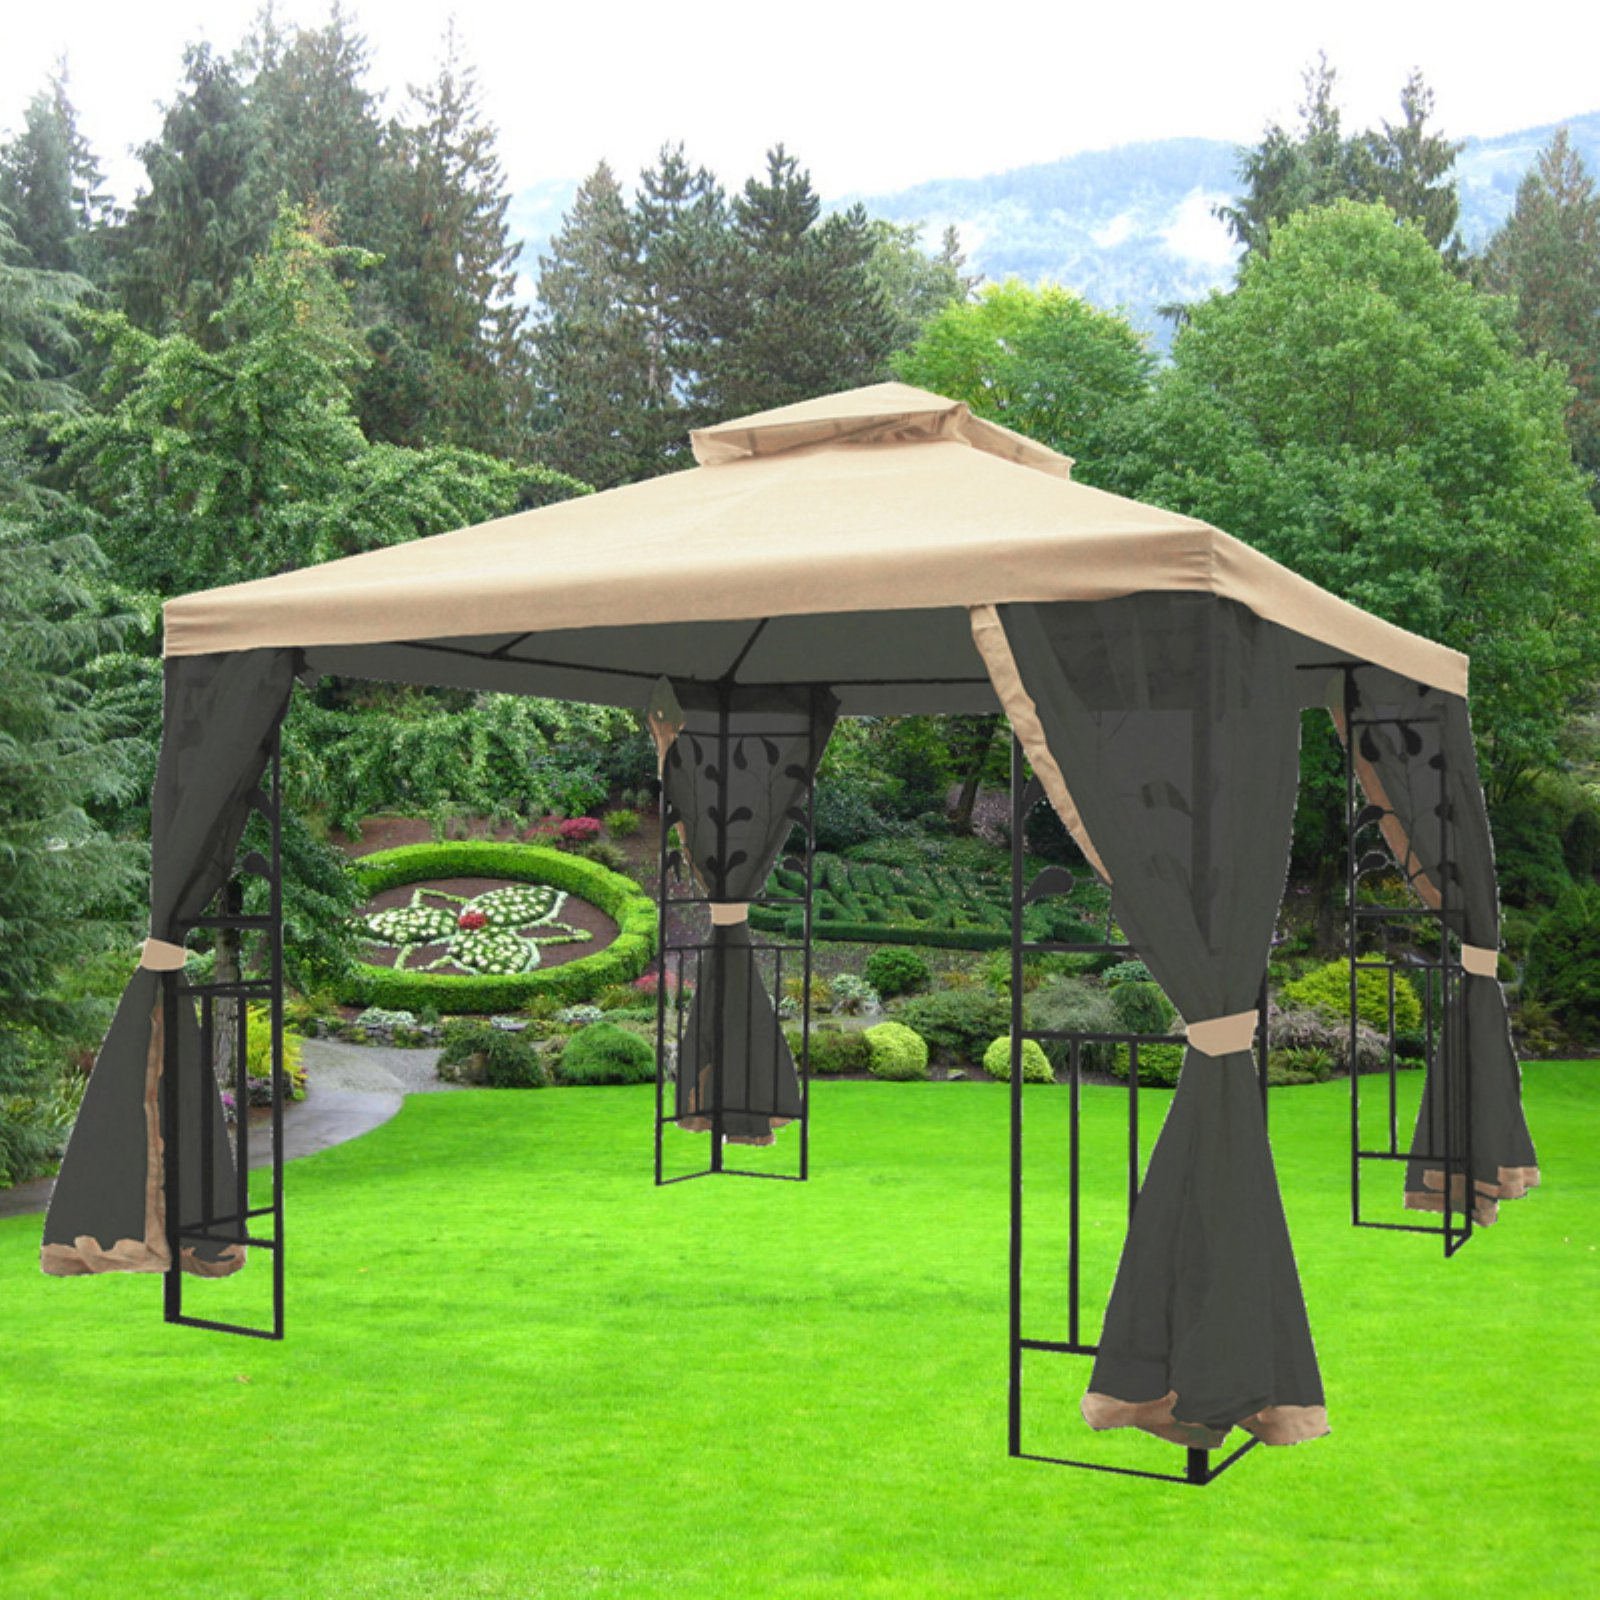 MAOS 10 Ft. W x 10 Ft. D Steel Gazebo with Mosquito Netting